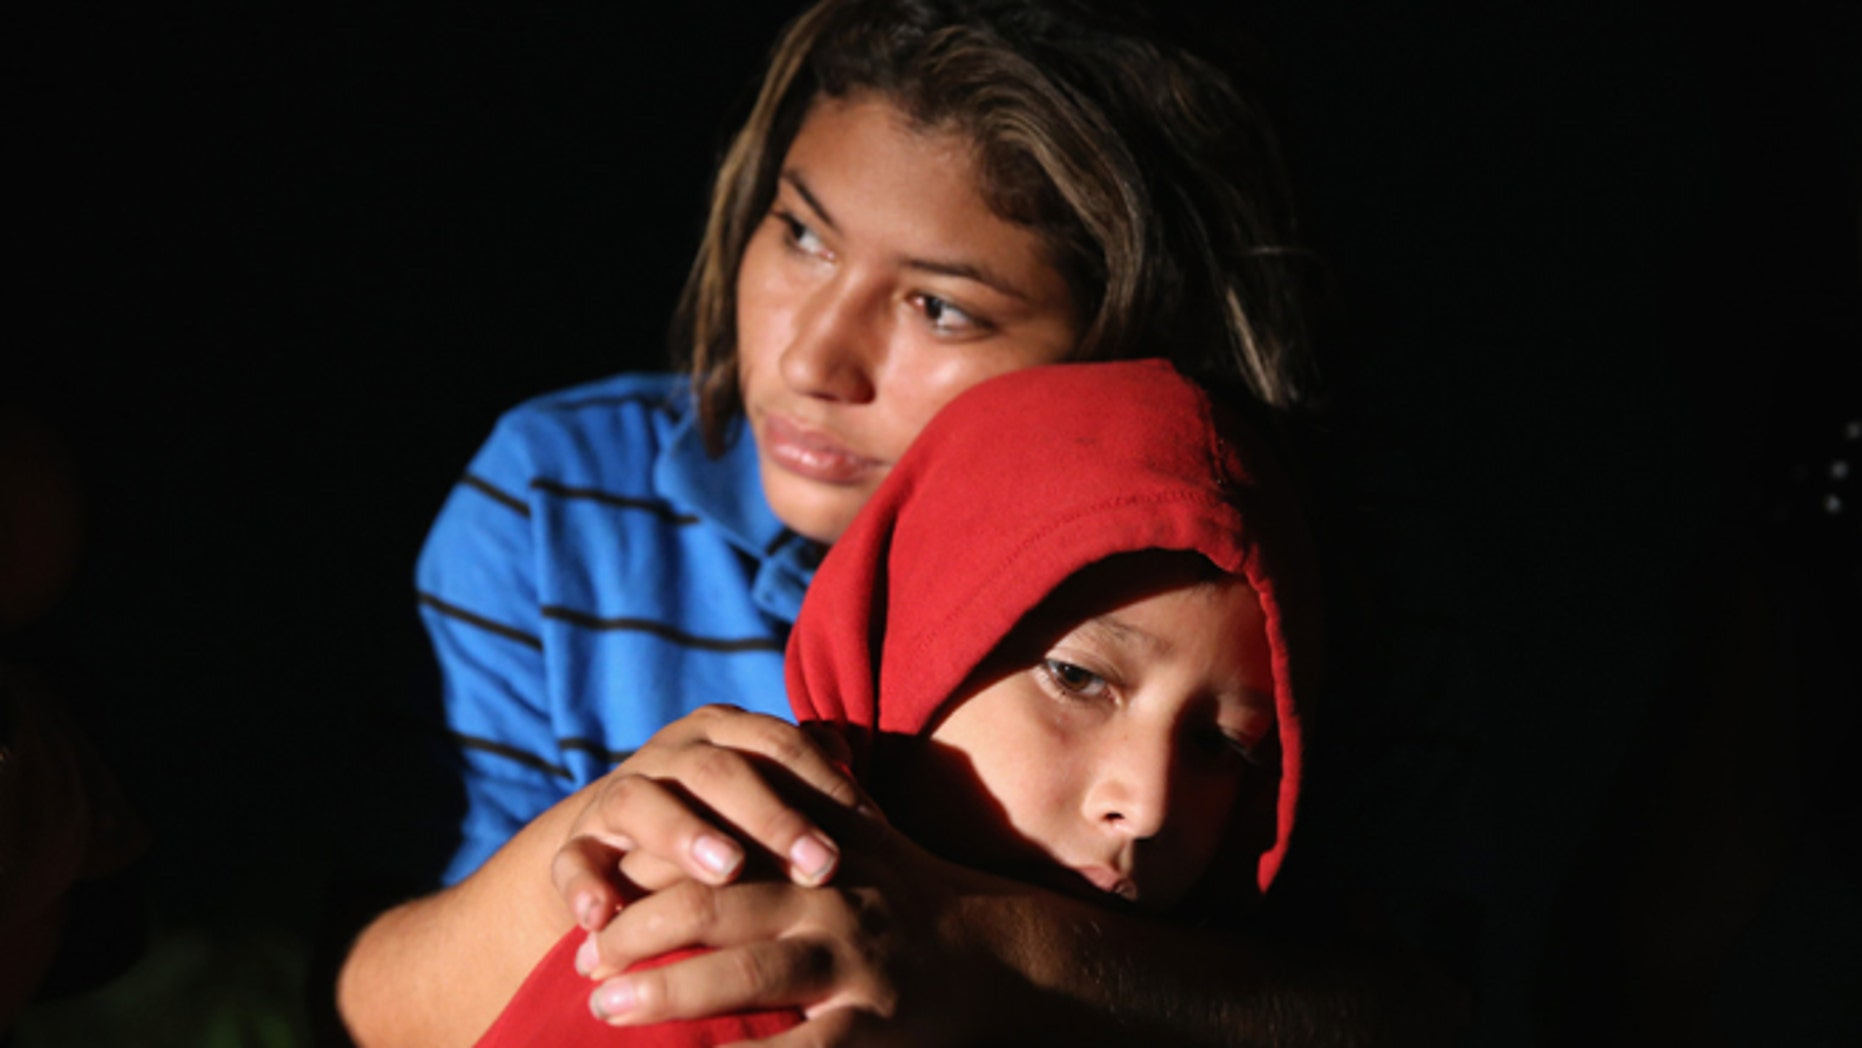 MISSION, TX - SEPTEMBER 08:  Families of Central American immigrants, including Lorena Arriaga, 27, and her son Jason Ramirez, 7, from El Salvador, turn themselves in to U.S. Border Patrol agents after crossing the Rio Grande River from Mexico on September 8, 2014 to Mission, Texas. Although the numbers of such immigrant families and unaccompanied minors have decreased from a springtime high, thousands continue to cross in the border illegally into the United States. Texas' Rio Grande Valley sector is the busiest area for illegal border crossings, especially for Central Americans, into the U.S.  (Photo by John Moore/Getty Images)